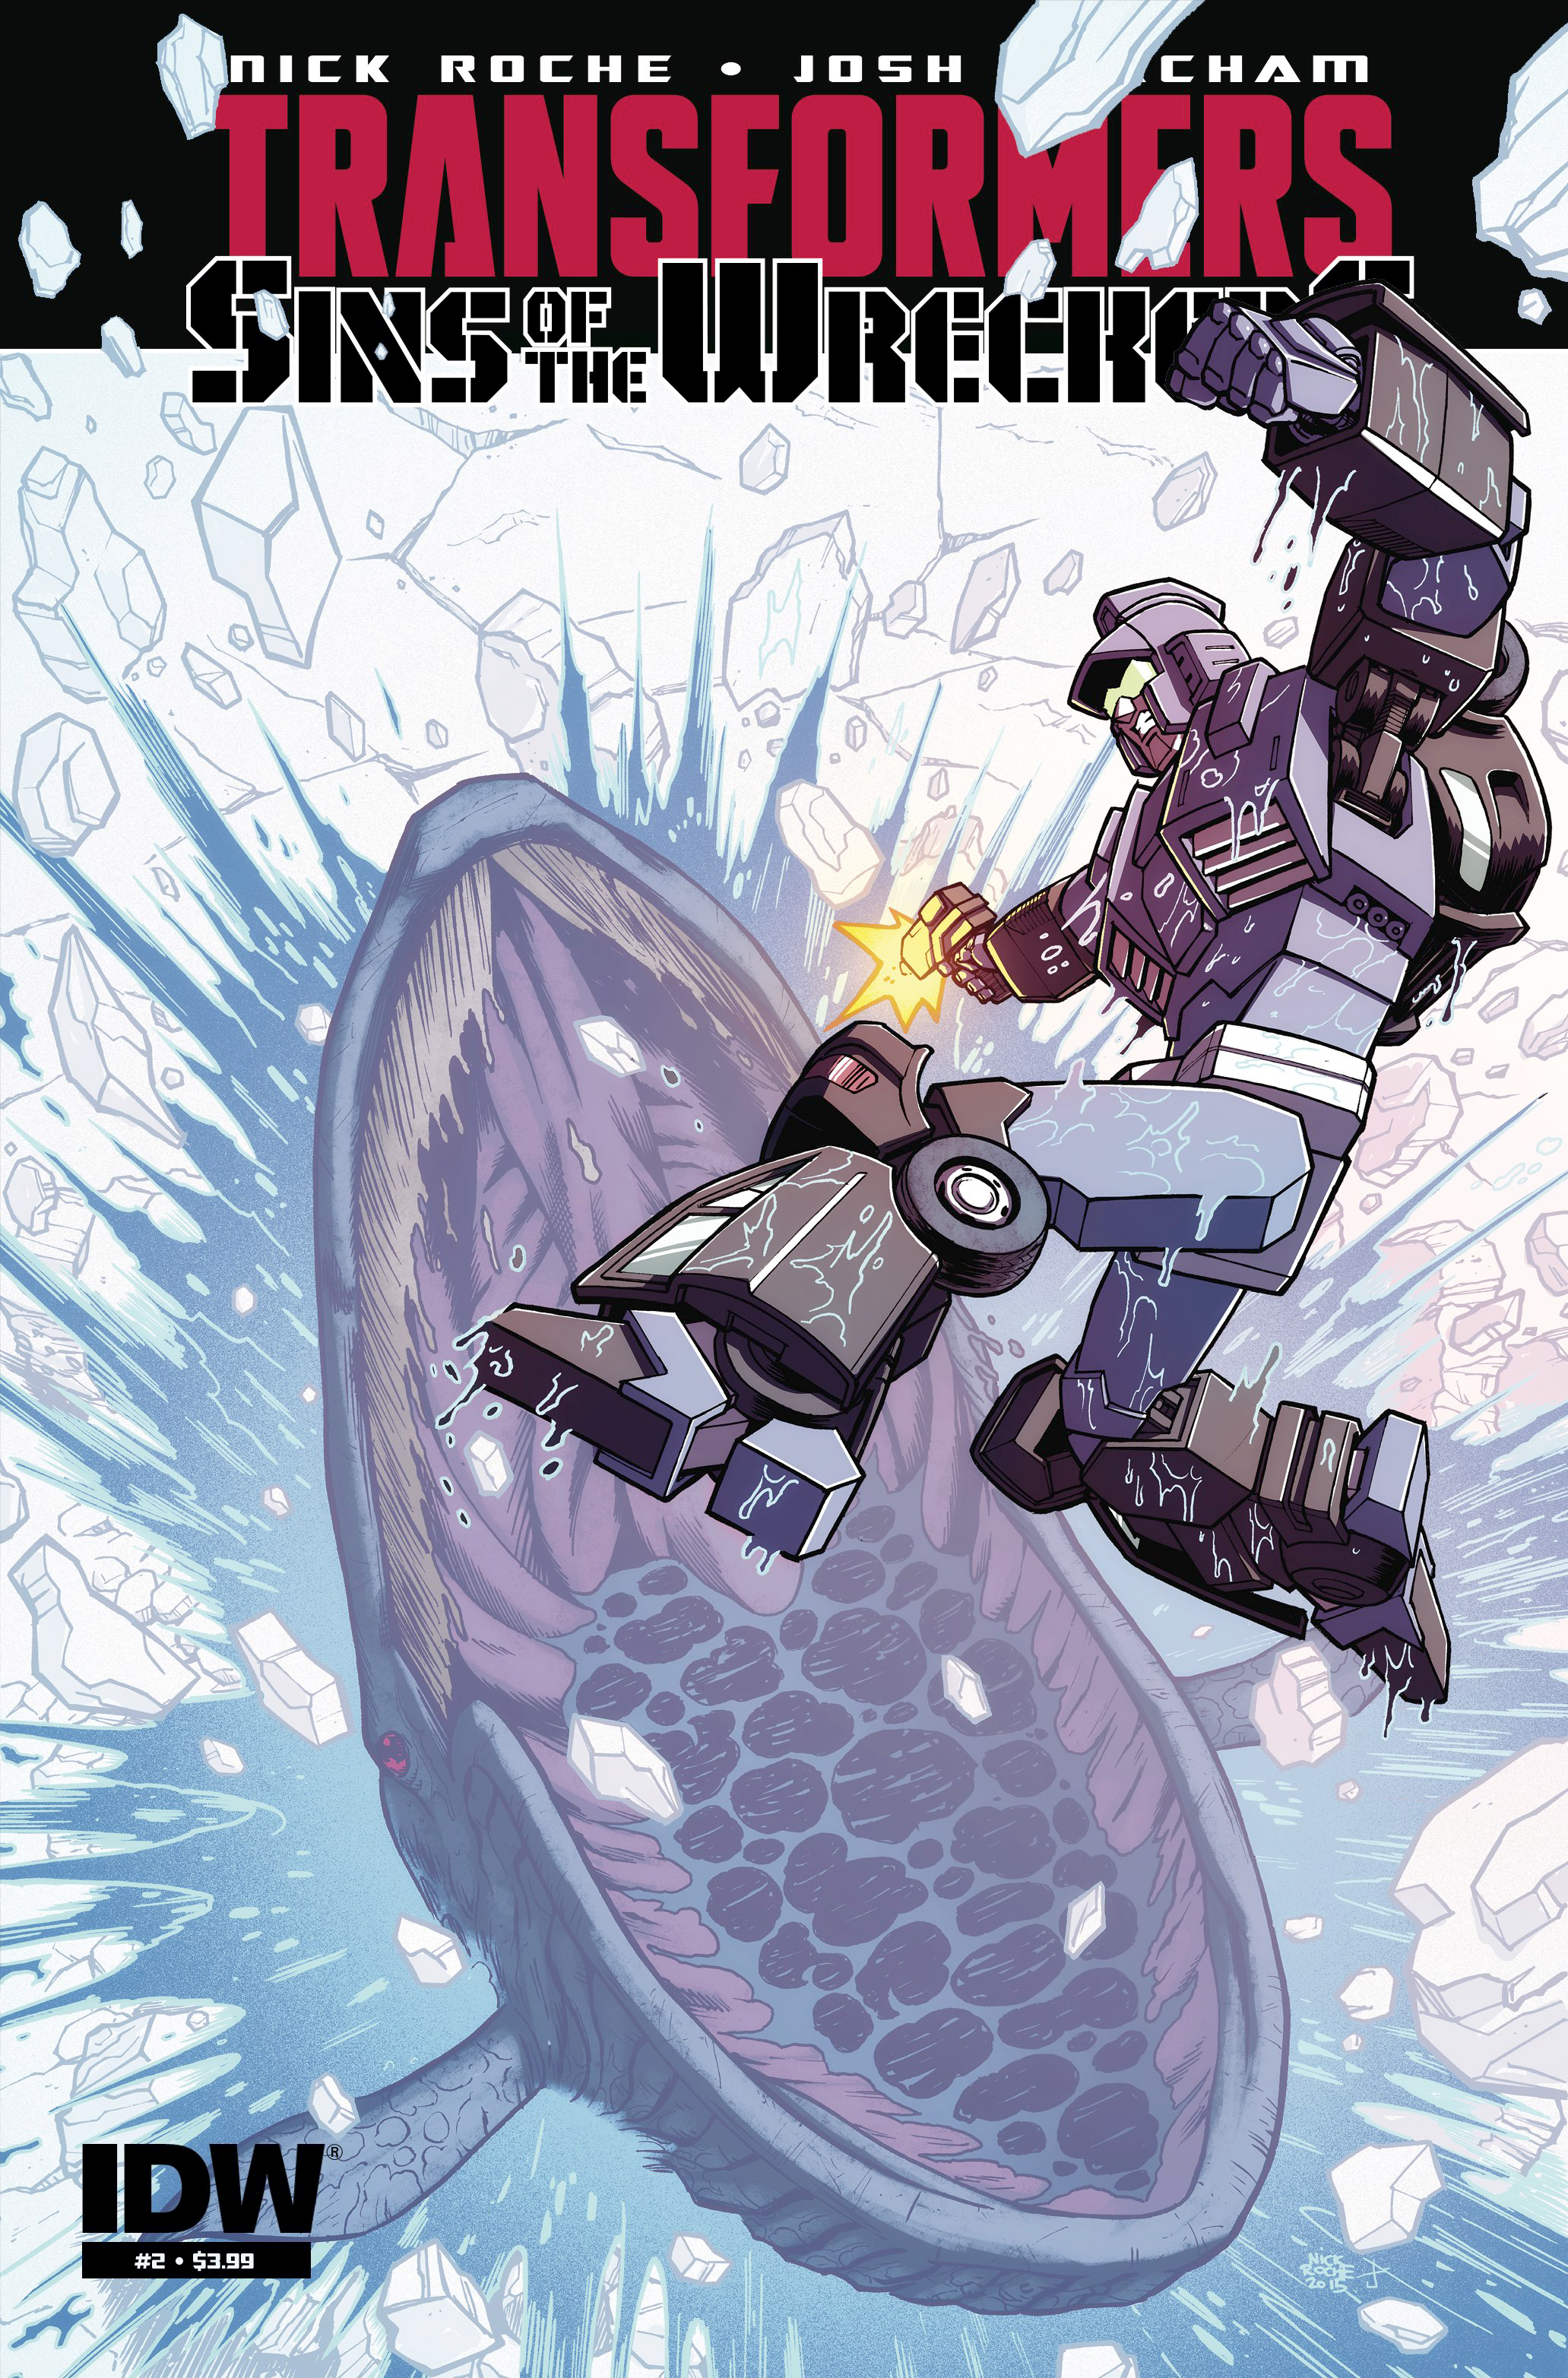 TRANSFORMERS SINS OF WRECKERS #2